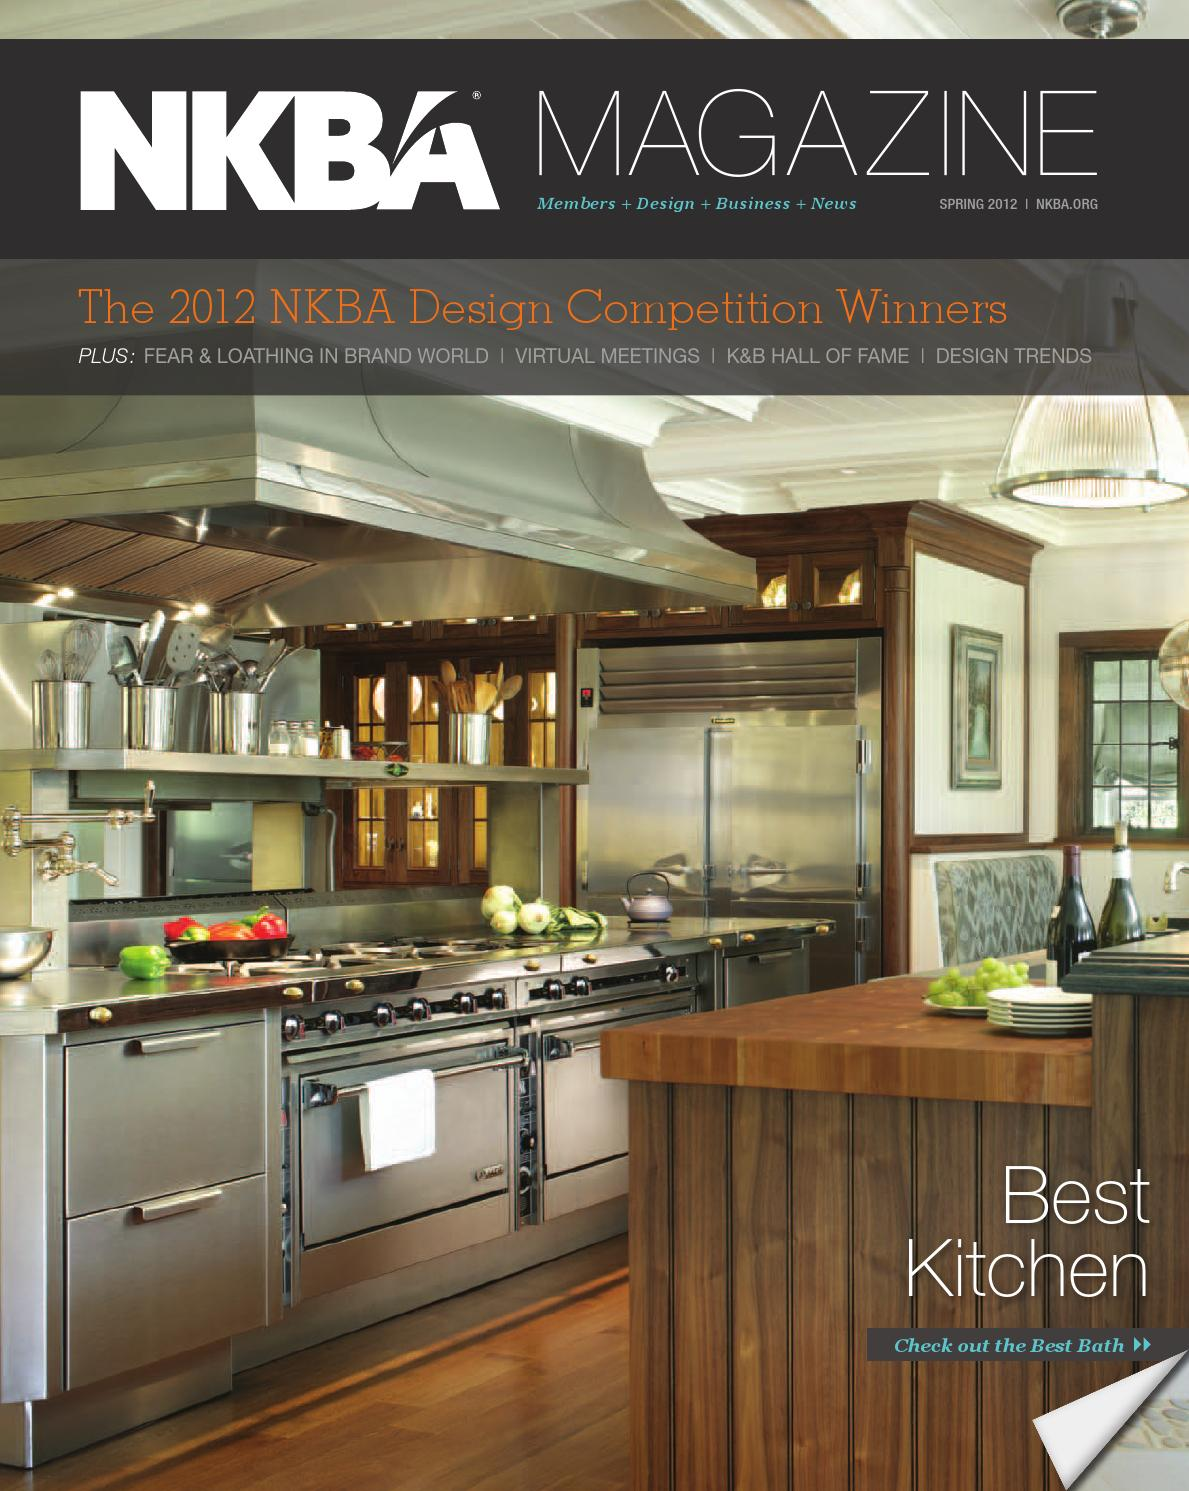 National kitchen and bath association guidelines - Nkba Magazine Kbis Issue January 2015 By National Kitchen Bath Association Nkba Issuu